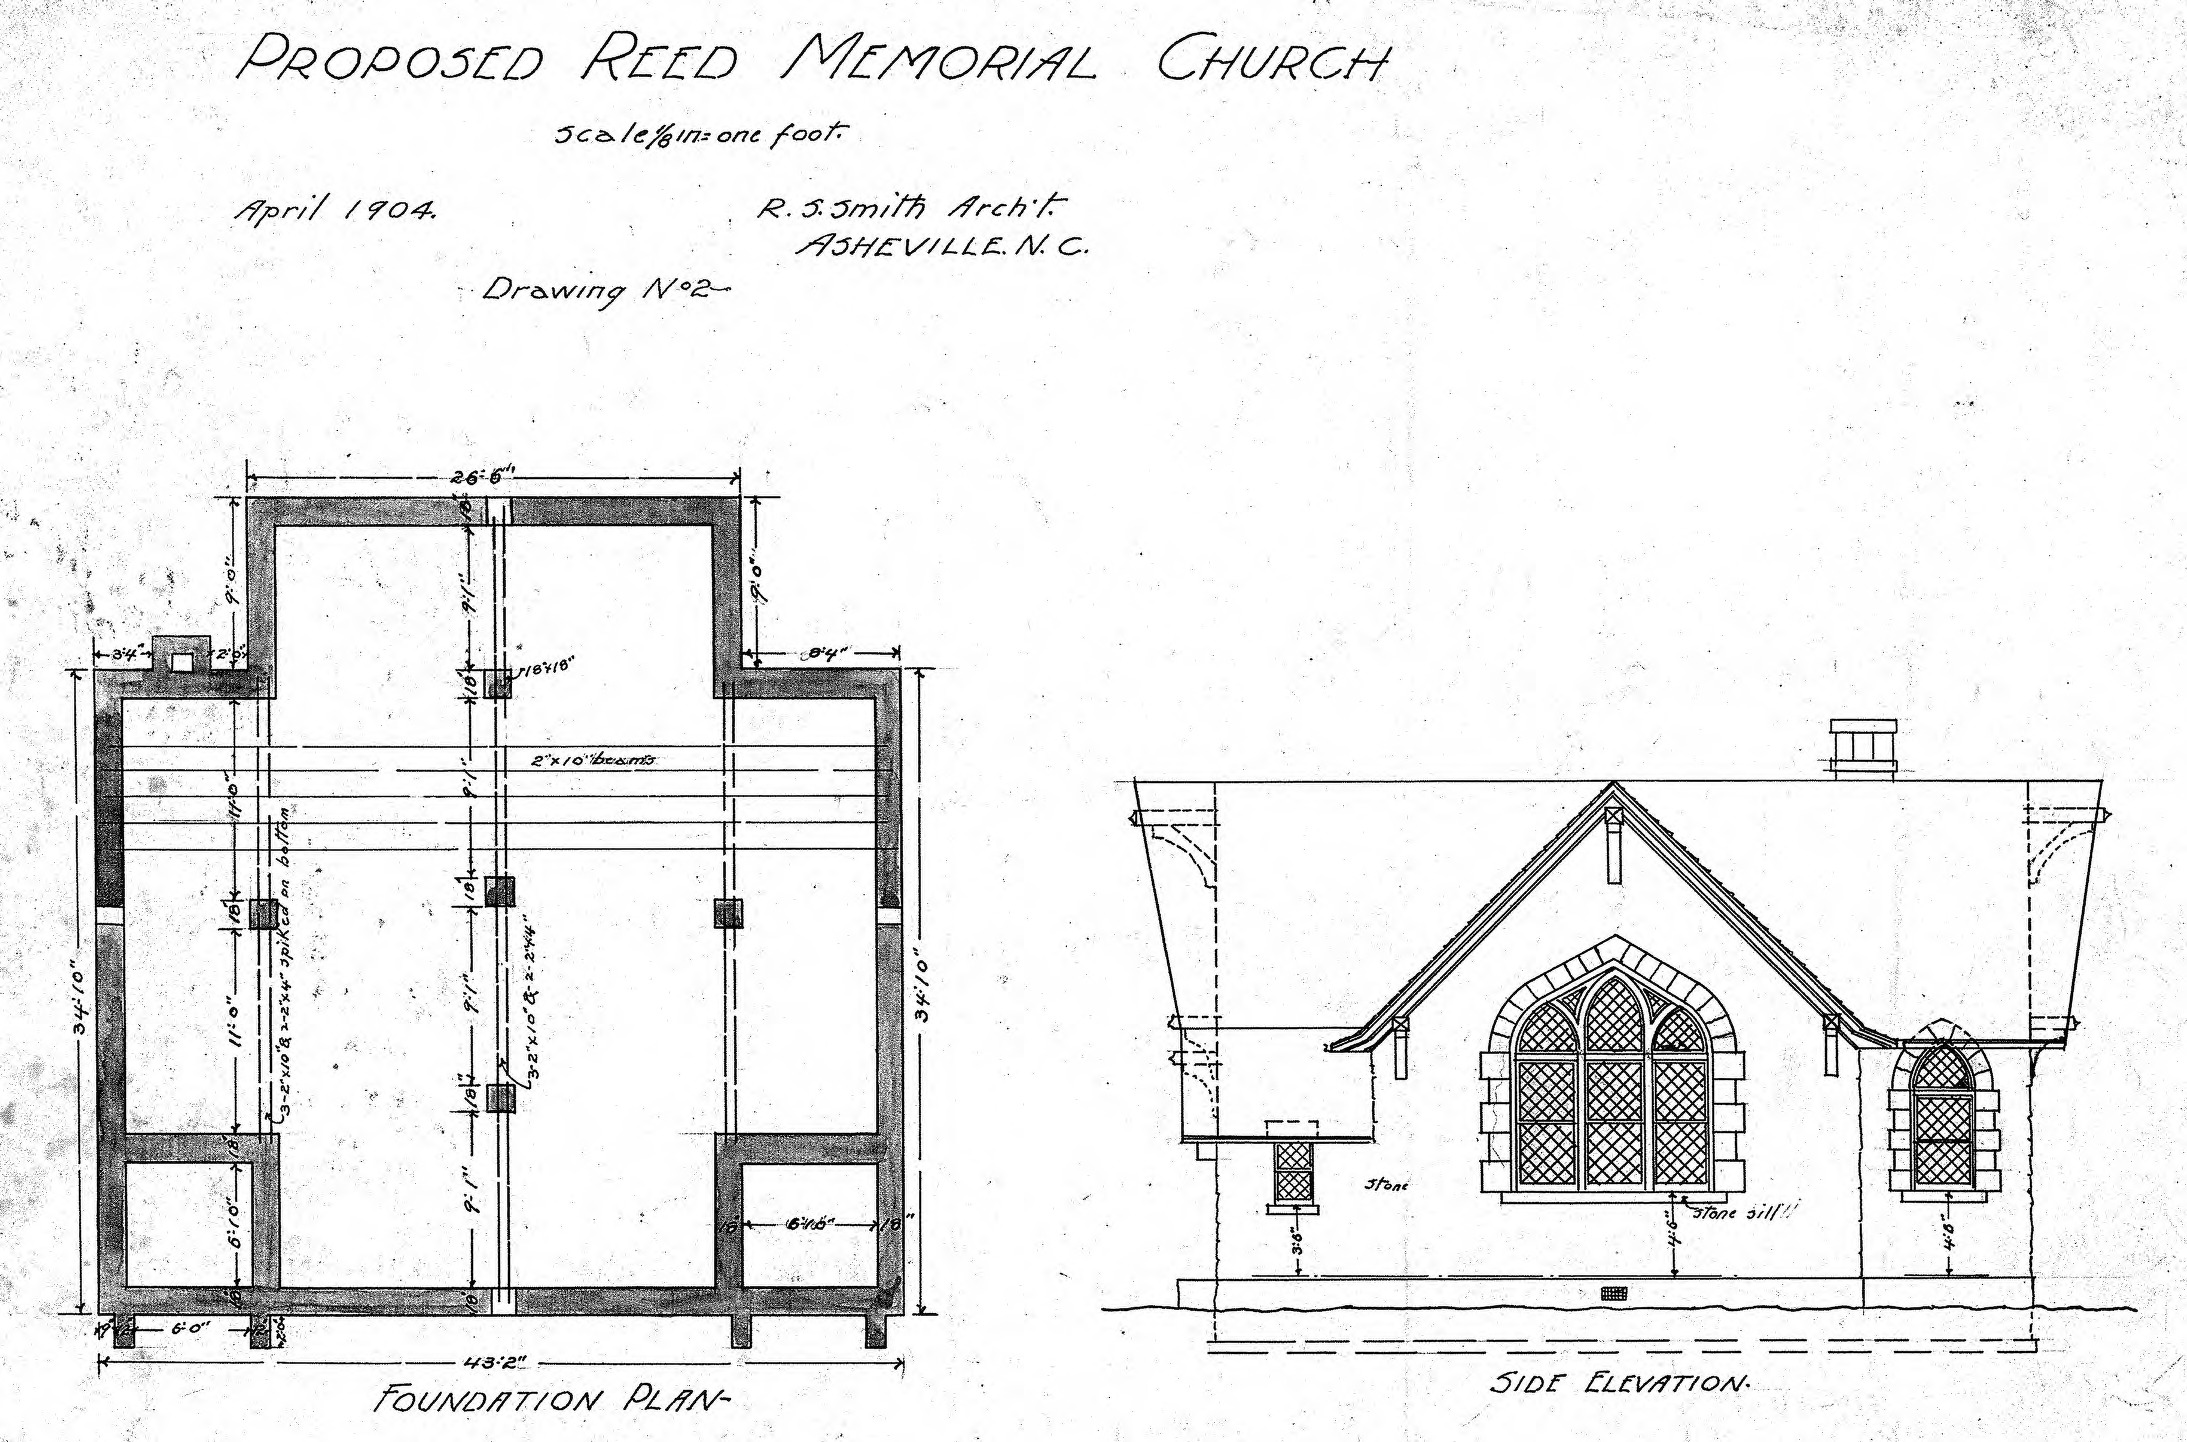 Proposed Reed Memorial Church--Foundation Plan & Side